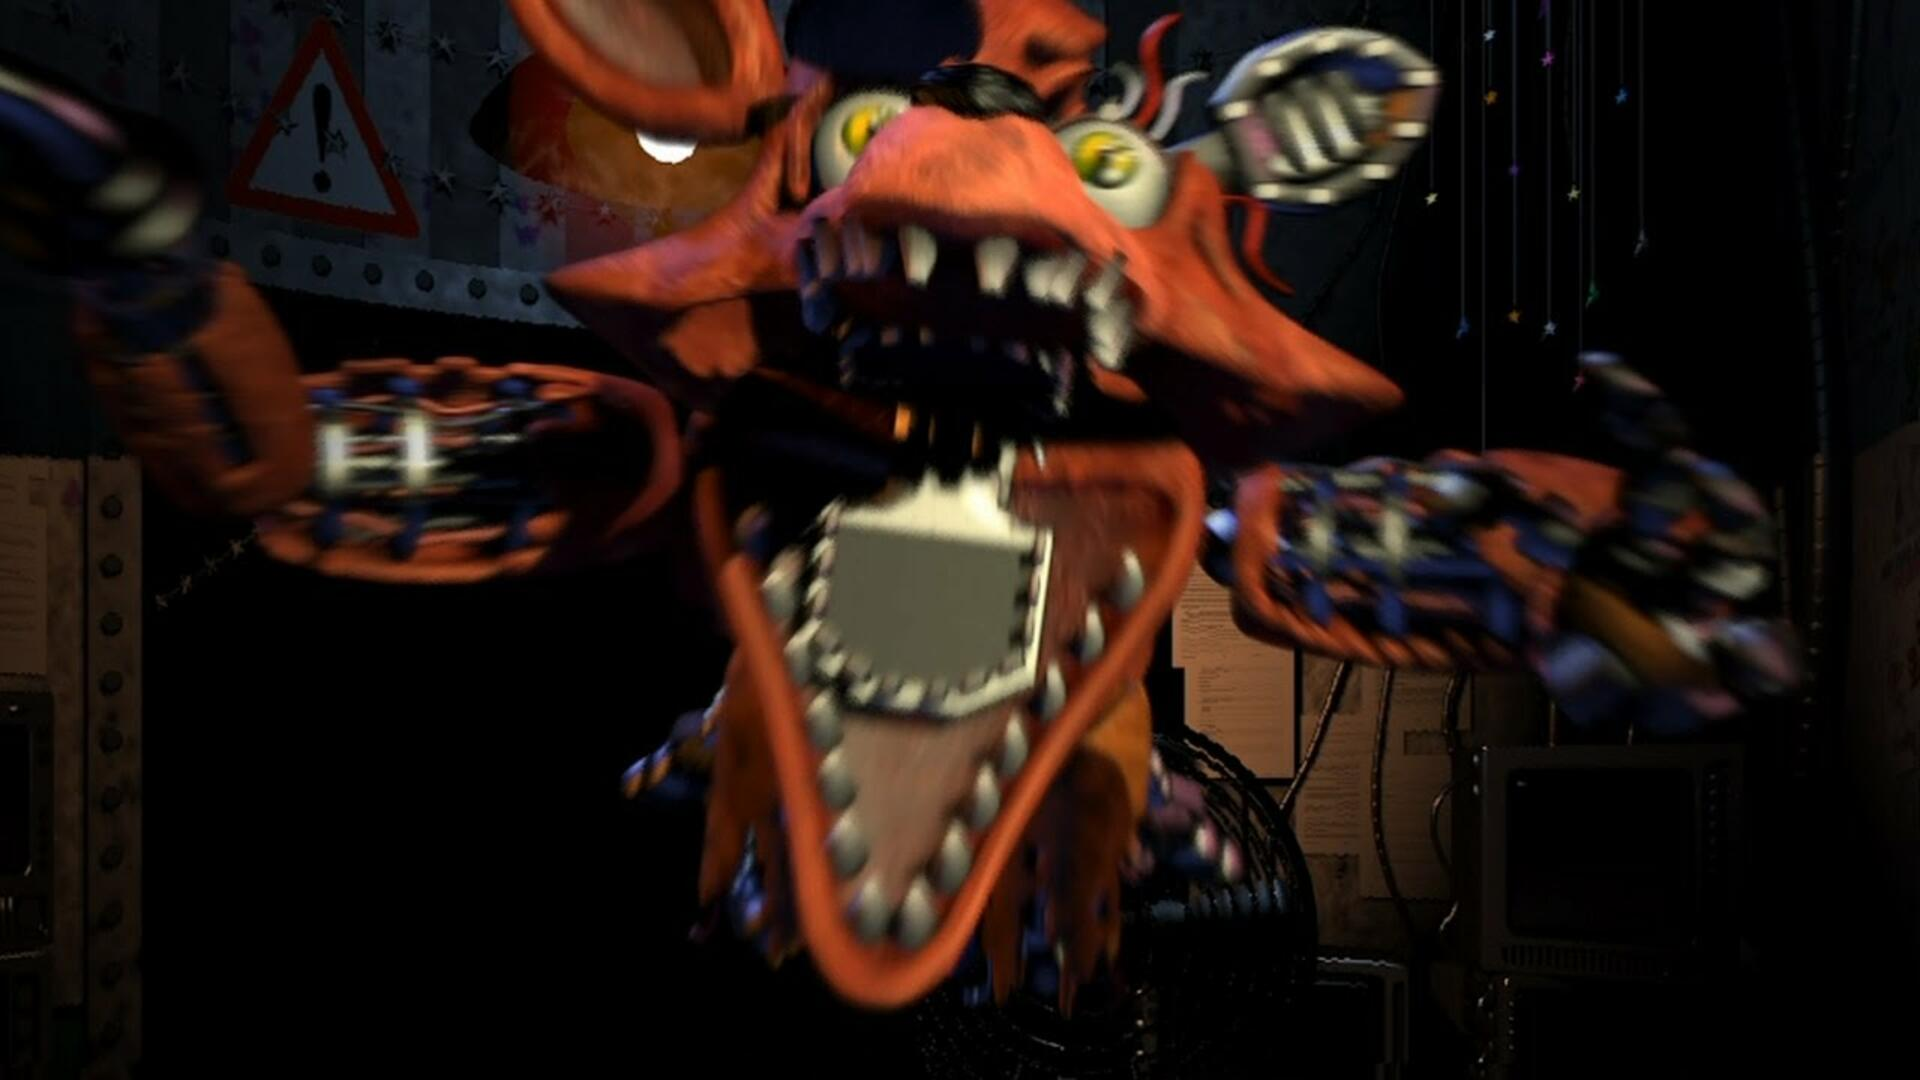 Five Nights at Freddy's Celebrates 5 Years of Kids Dying in an Off-Brand Chuck E. Cheese